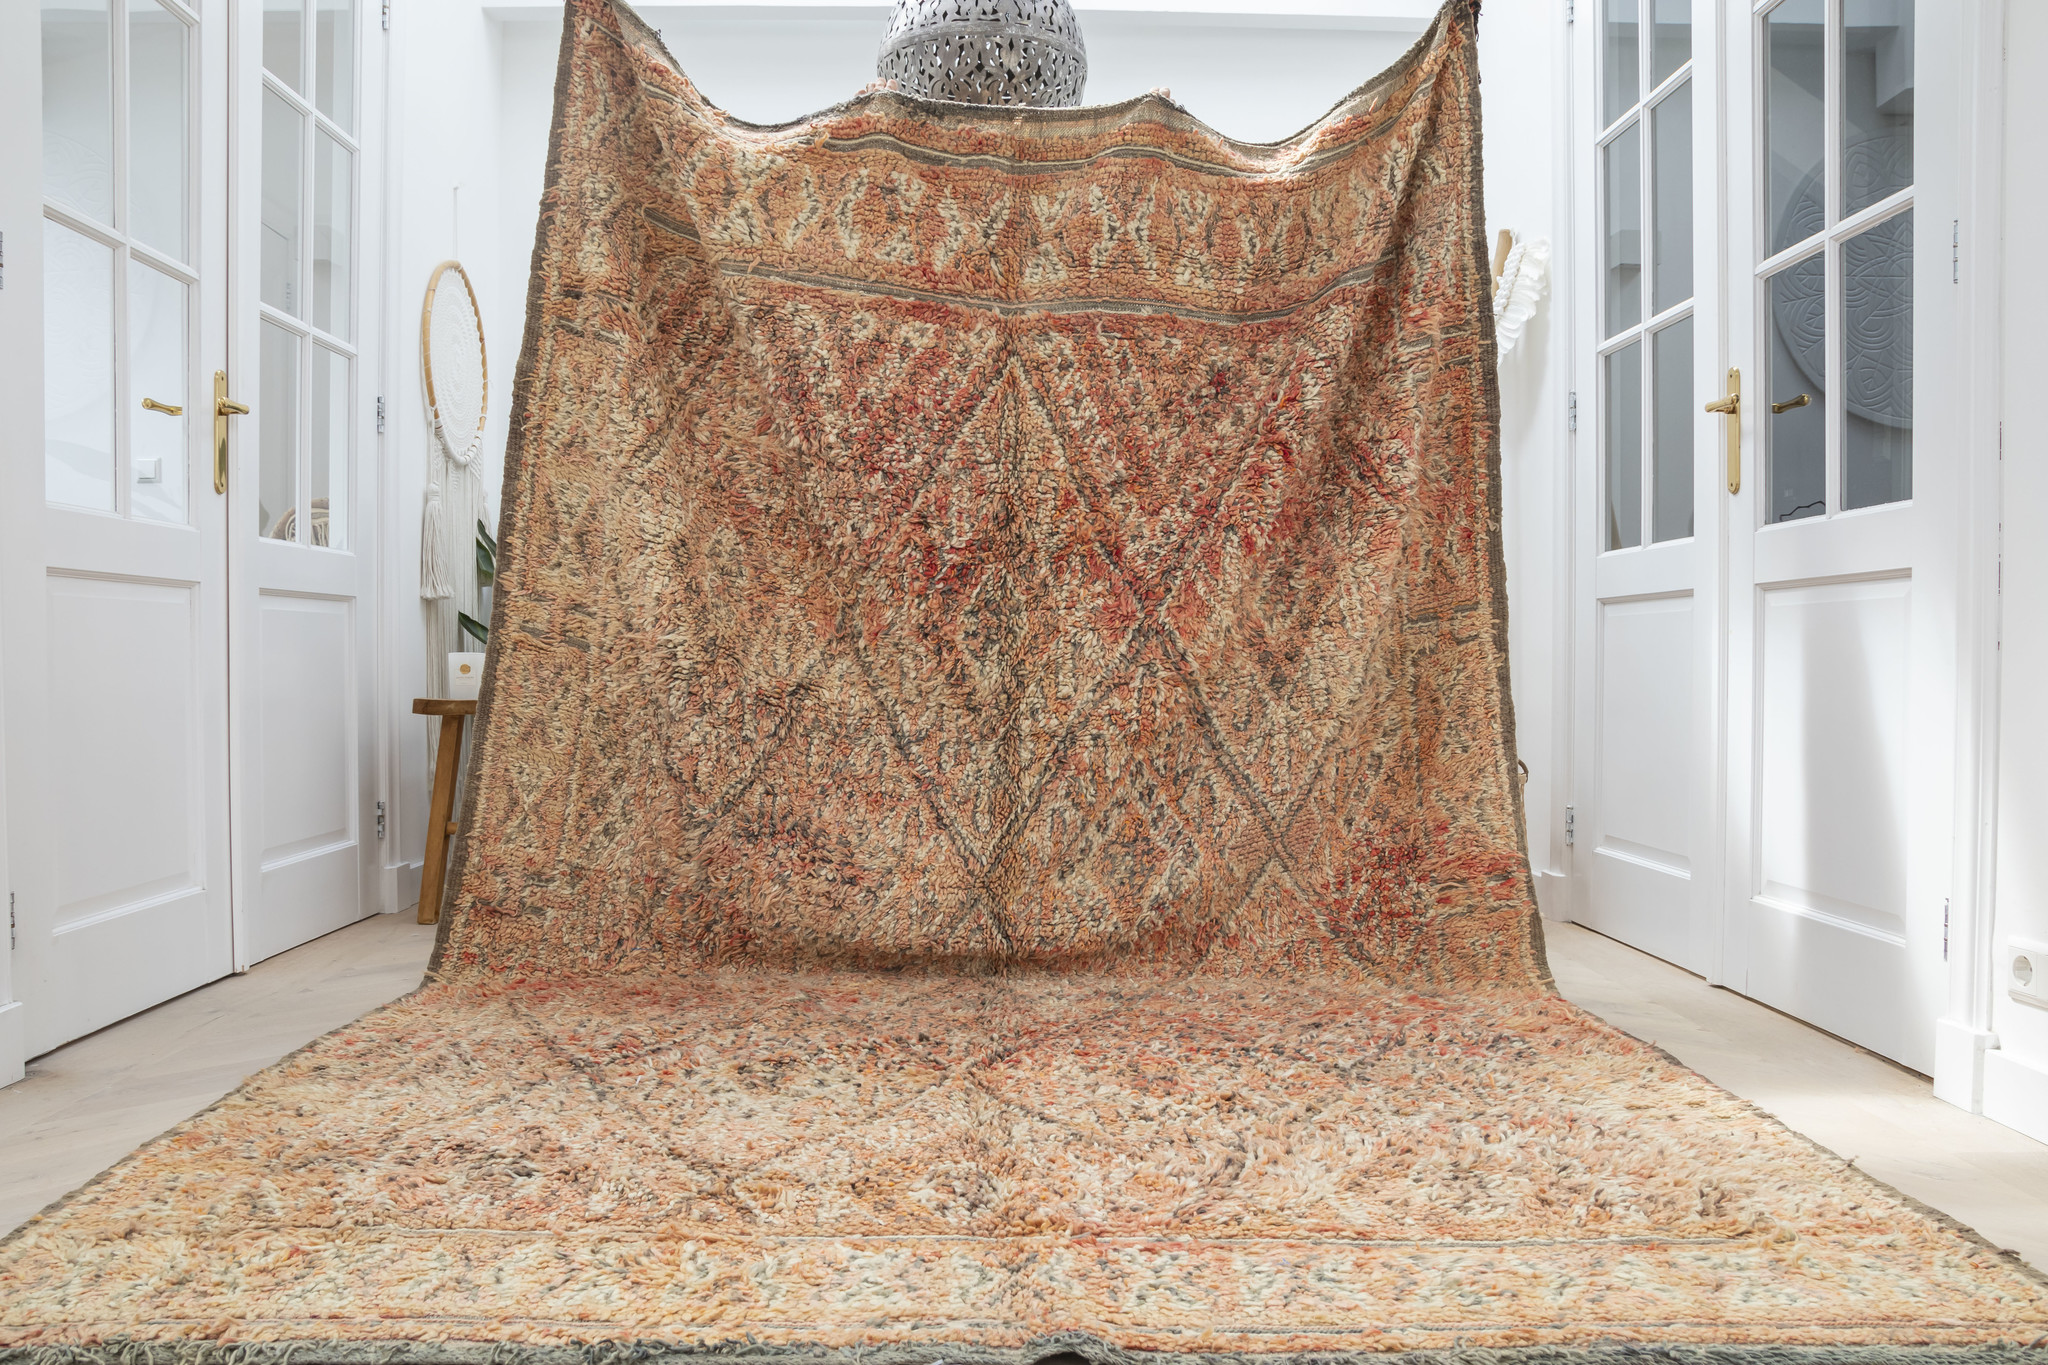 Simply Pure Handknotted Vintage Beni M'guild berber rug from Morocco  196 x 335 cm